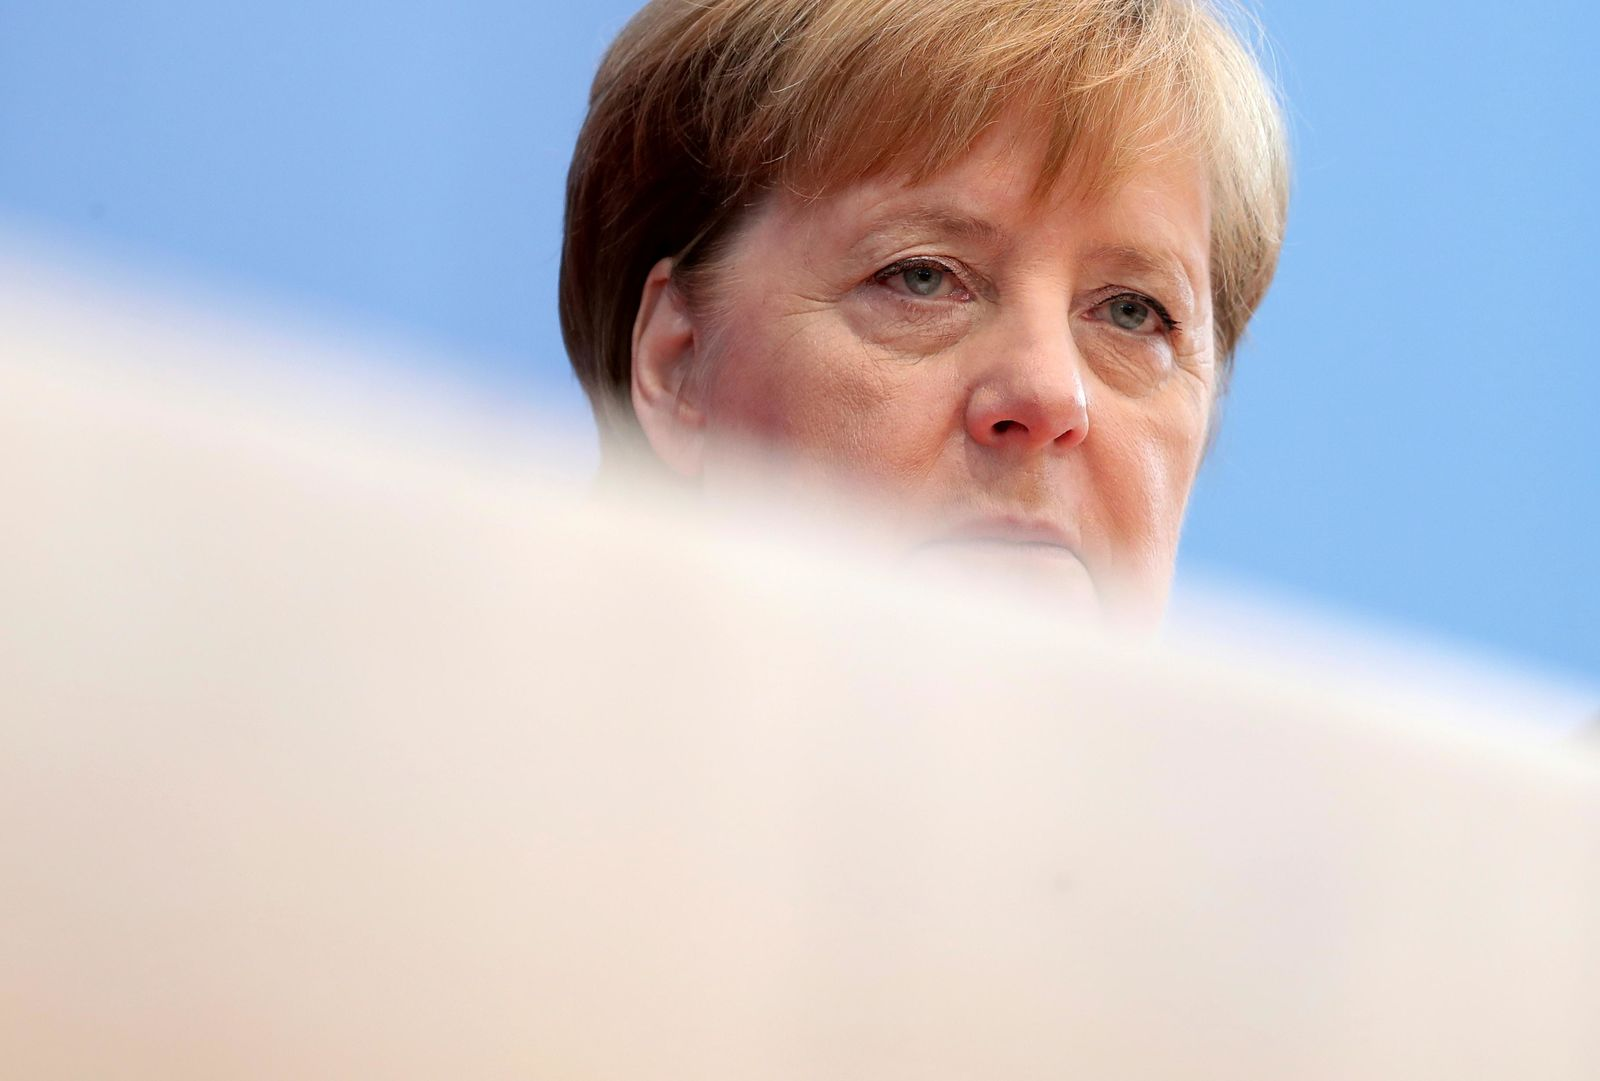 German Chancellor Angela Merkel attends her annual sommer press conference in Berlin, Germany, Friday, July 19, 2019. (AP Photo/Michael Sohn)